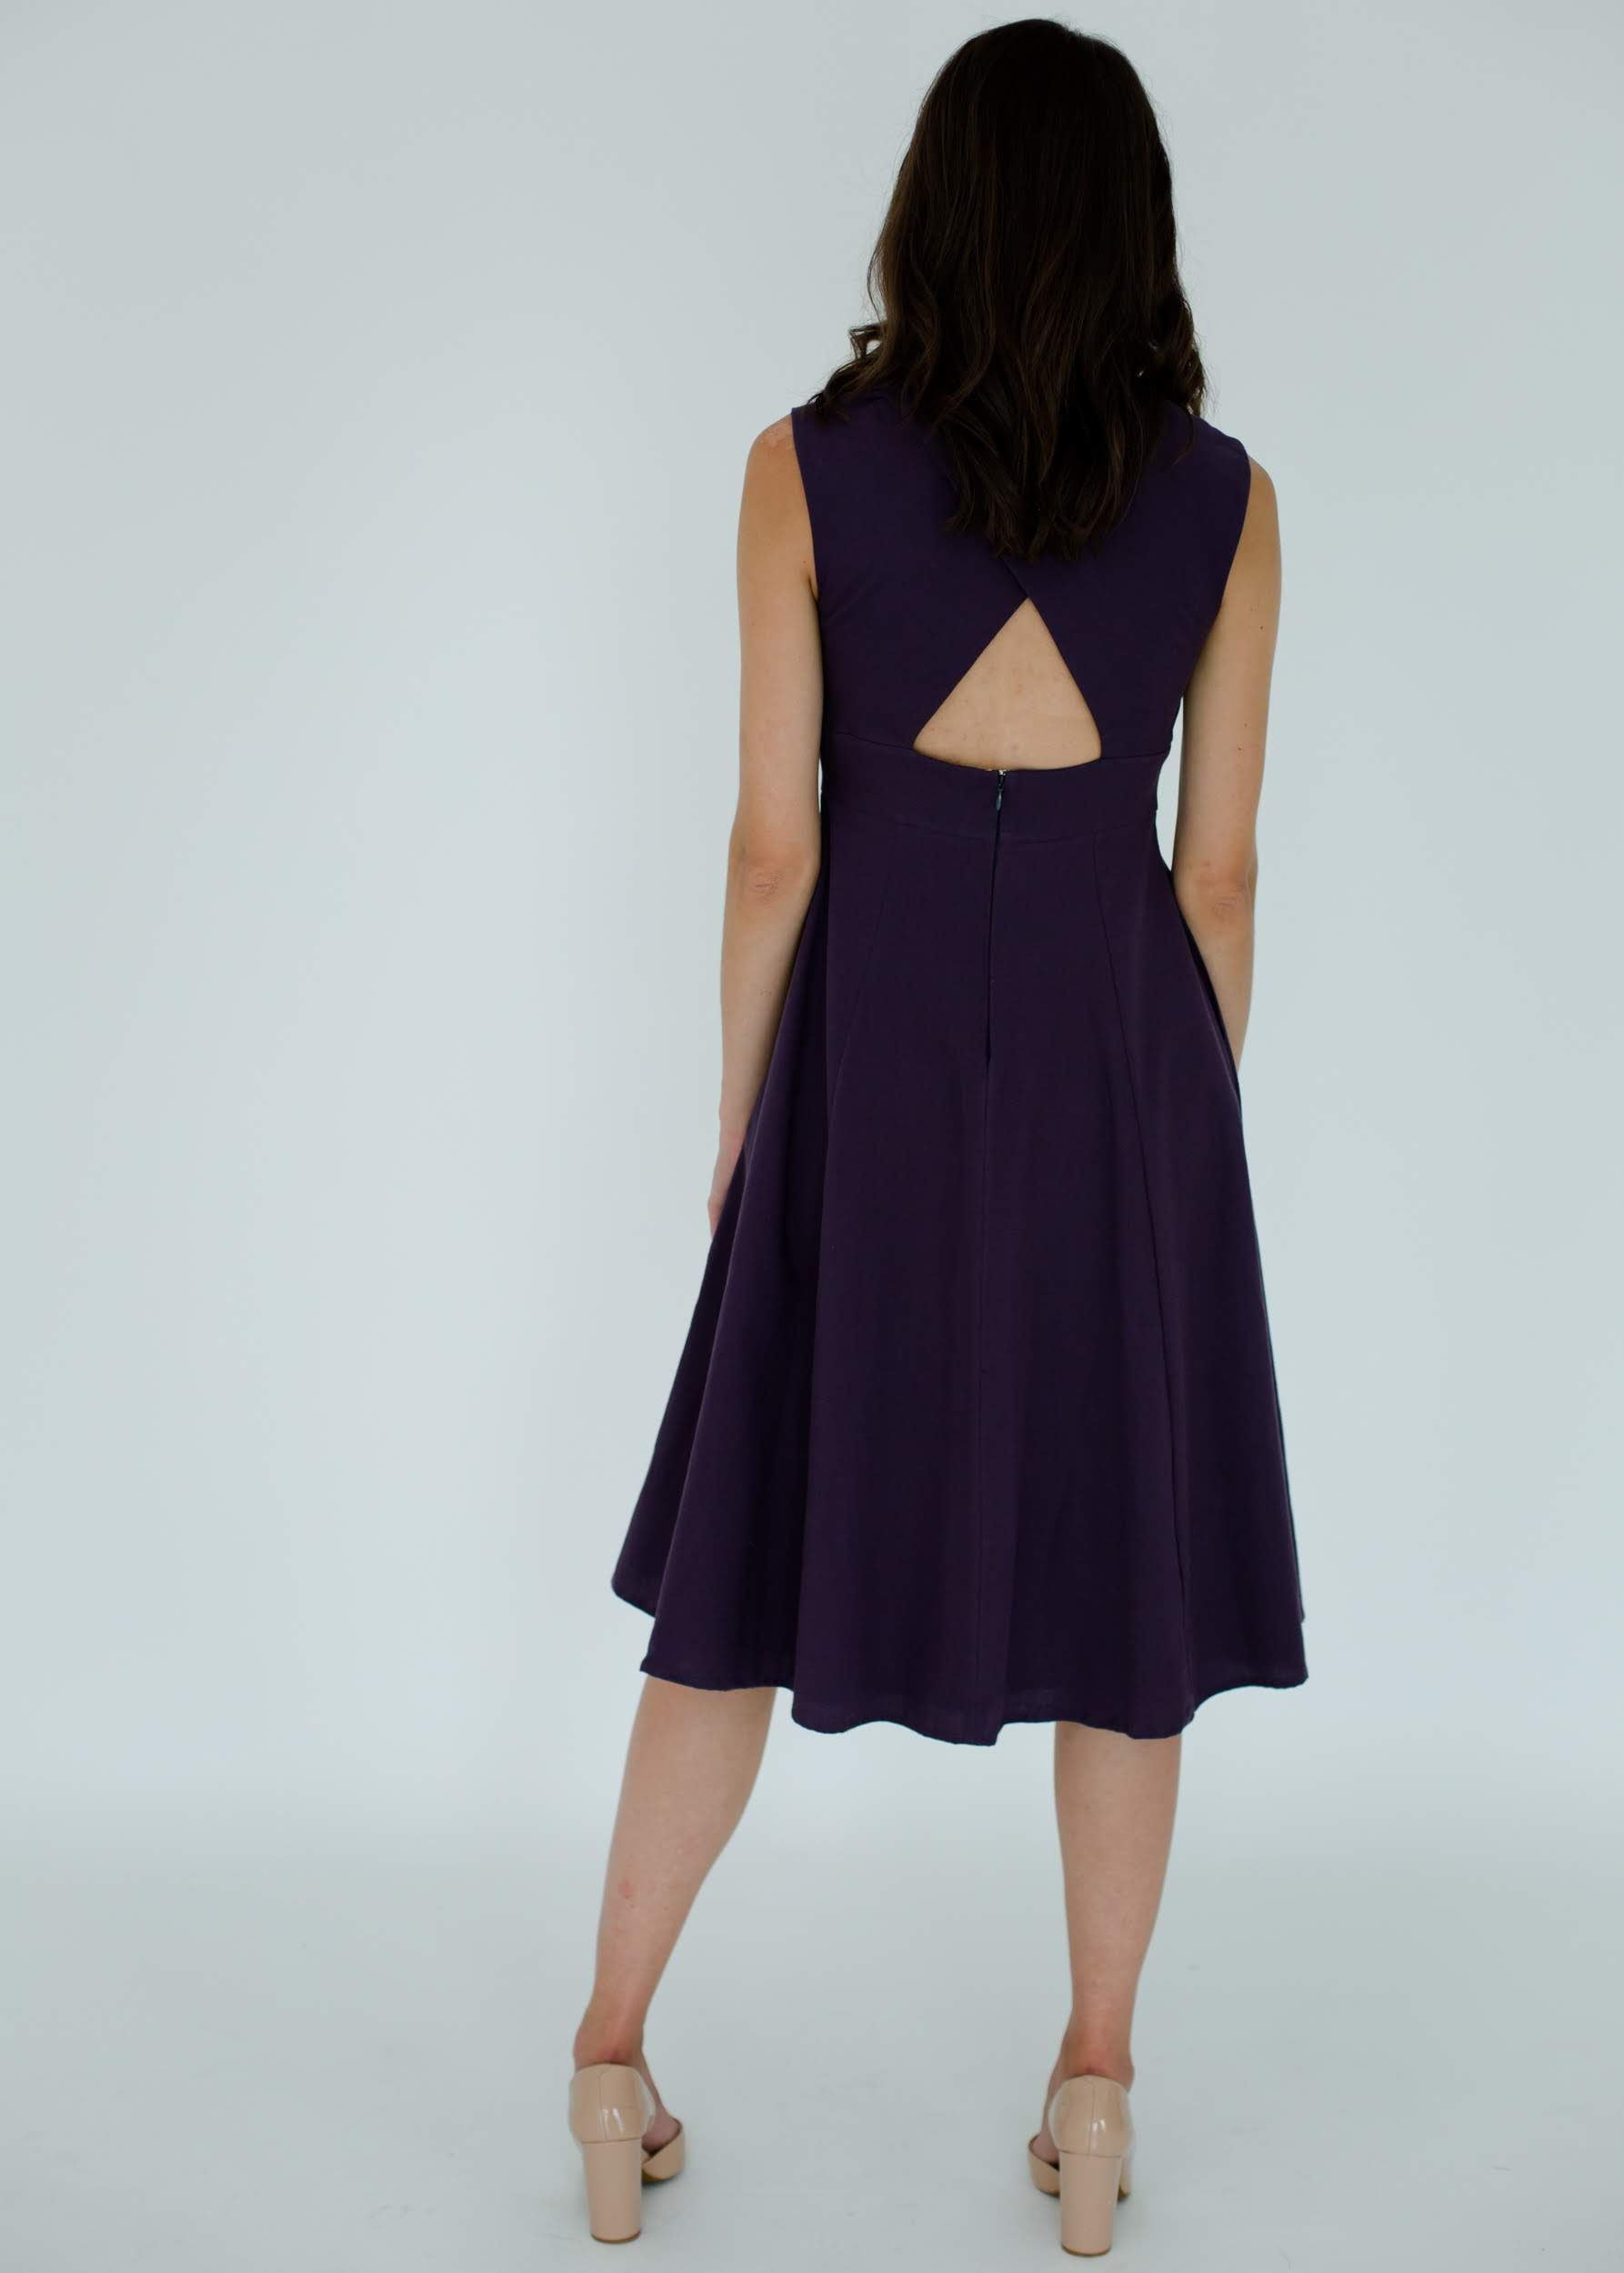 Kelly Dress in Dark Violet